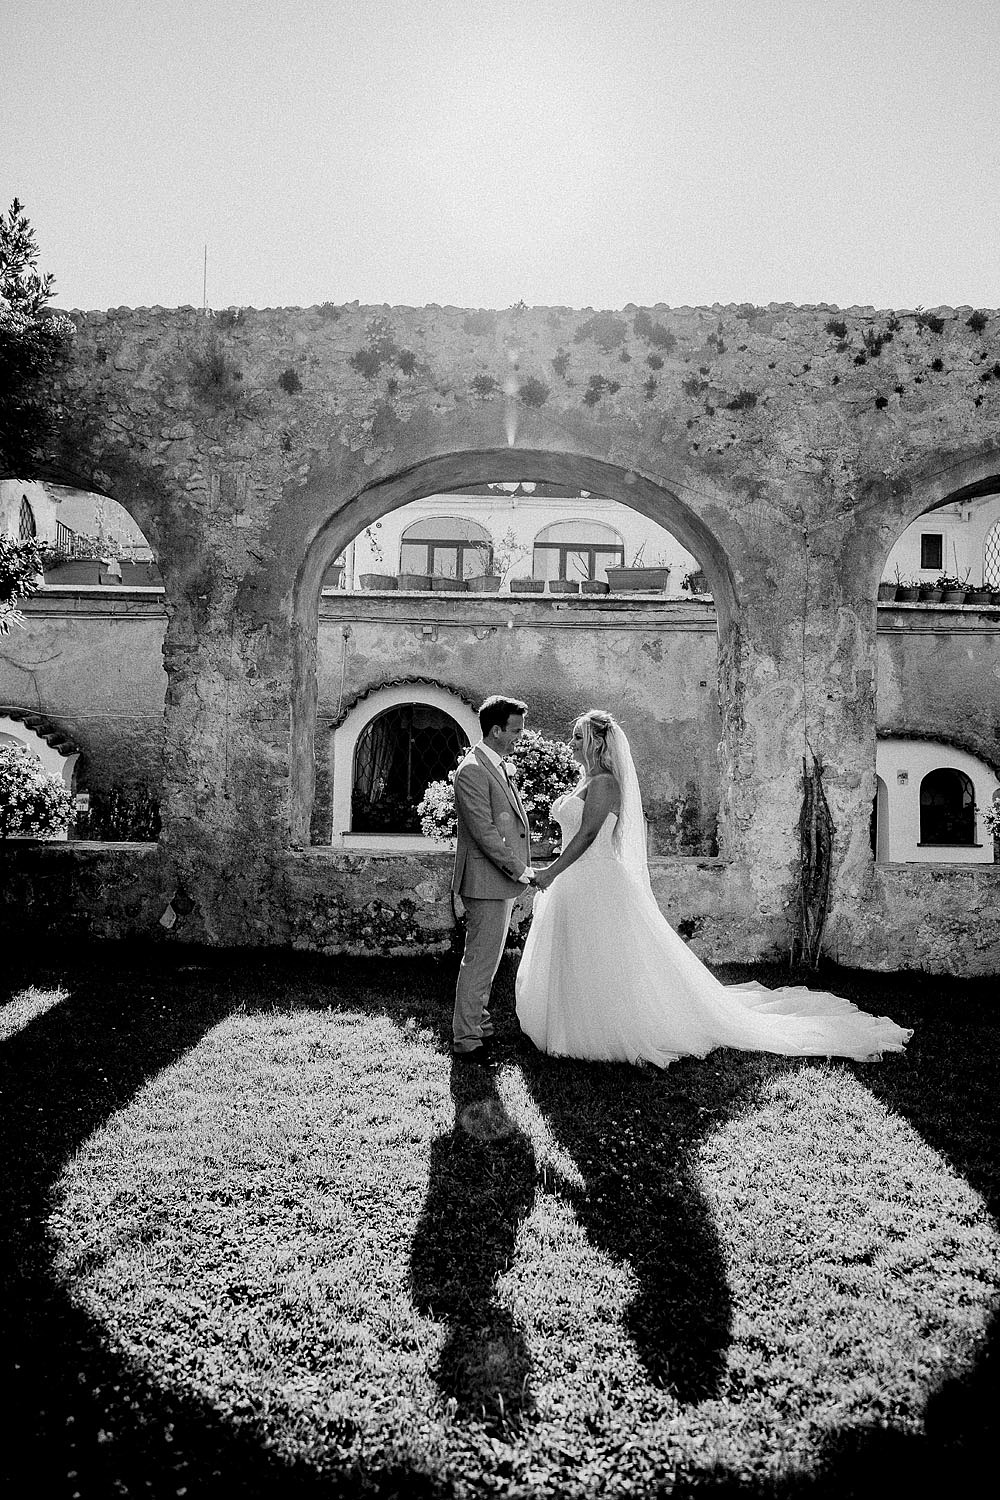 RAVELLO MATRIMONIO SULLA COSTIERA AMALFITANA :: Luxury wedding photography - 41